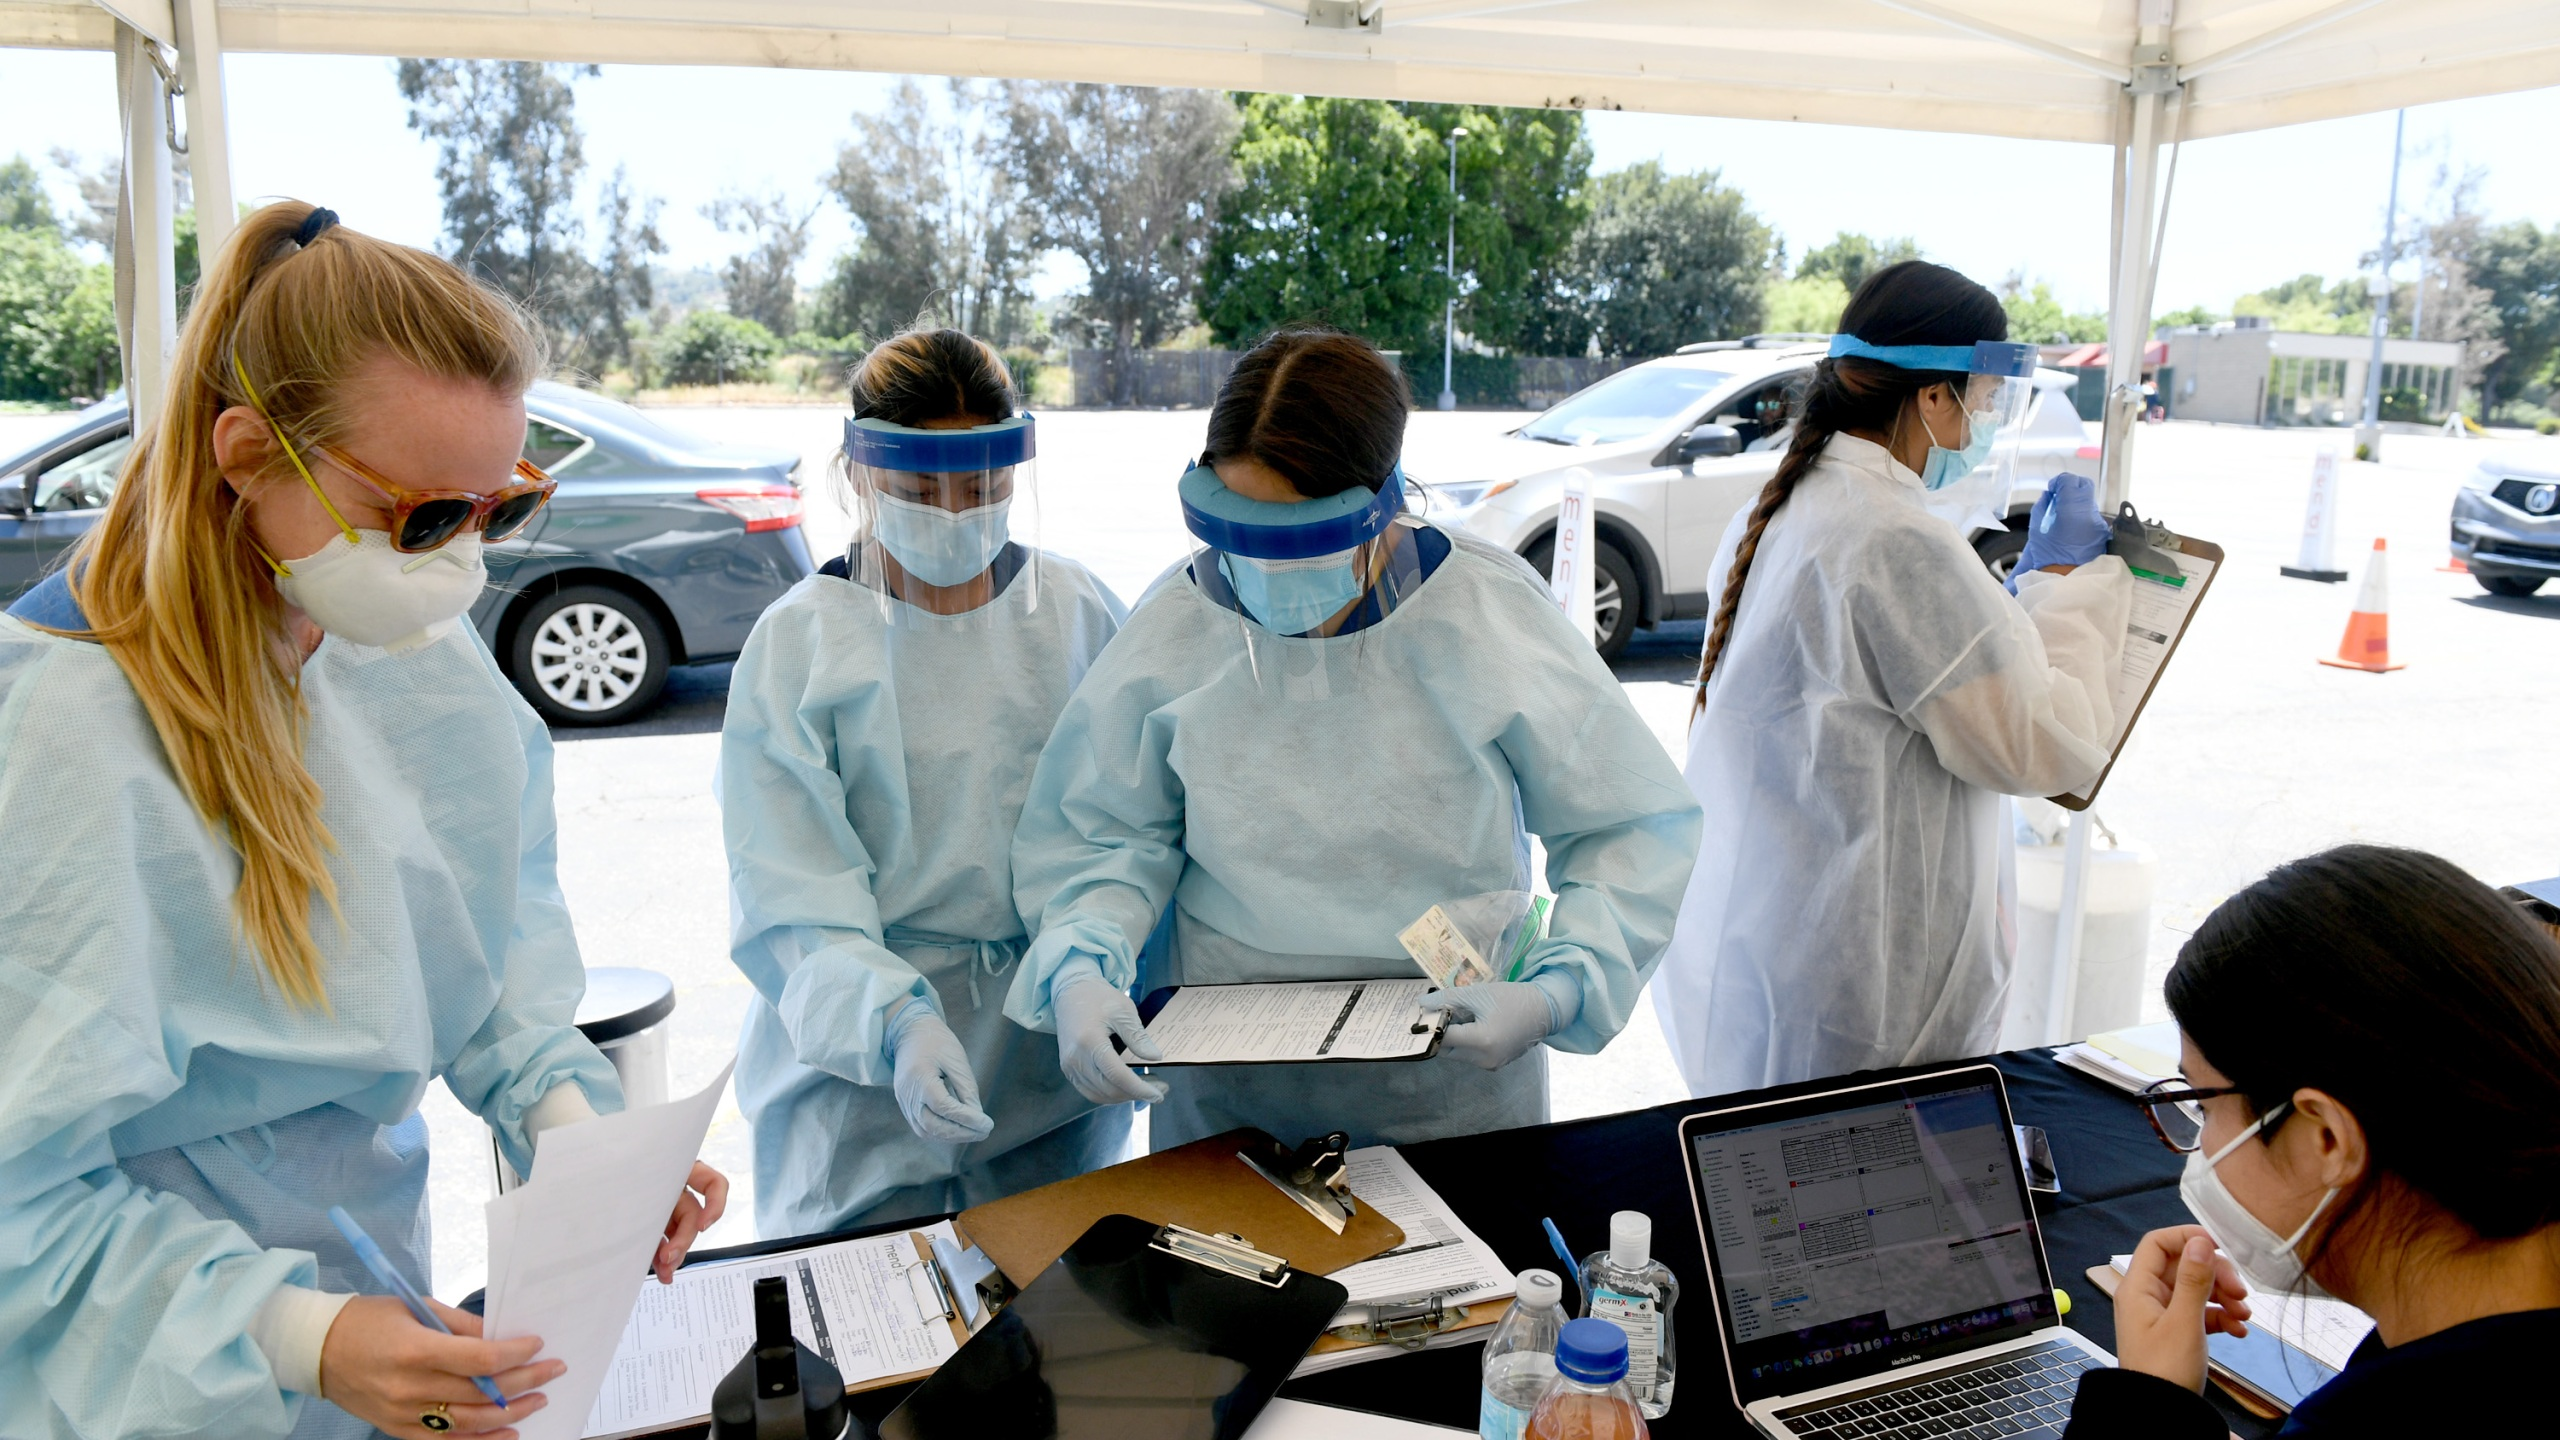 Workers perform drive-up coronavirus testing at the Westfield Fashion Square on May 13, 2020, in Sherman Oaks. (Kevin Winter/ Getty Images)